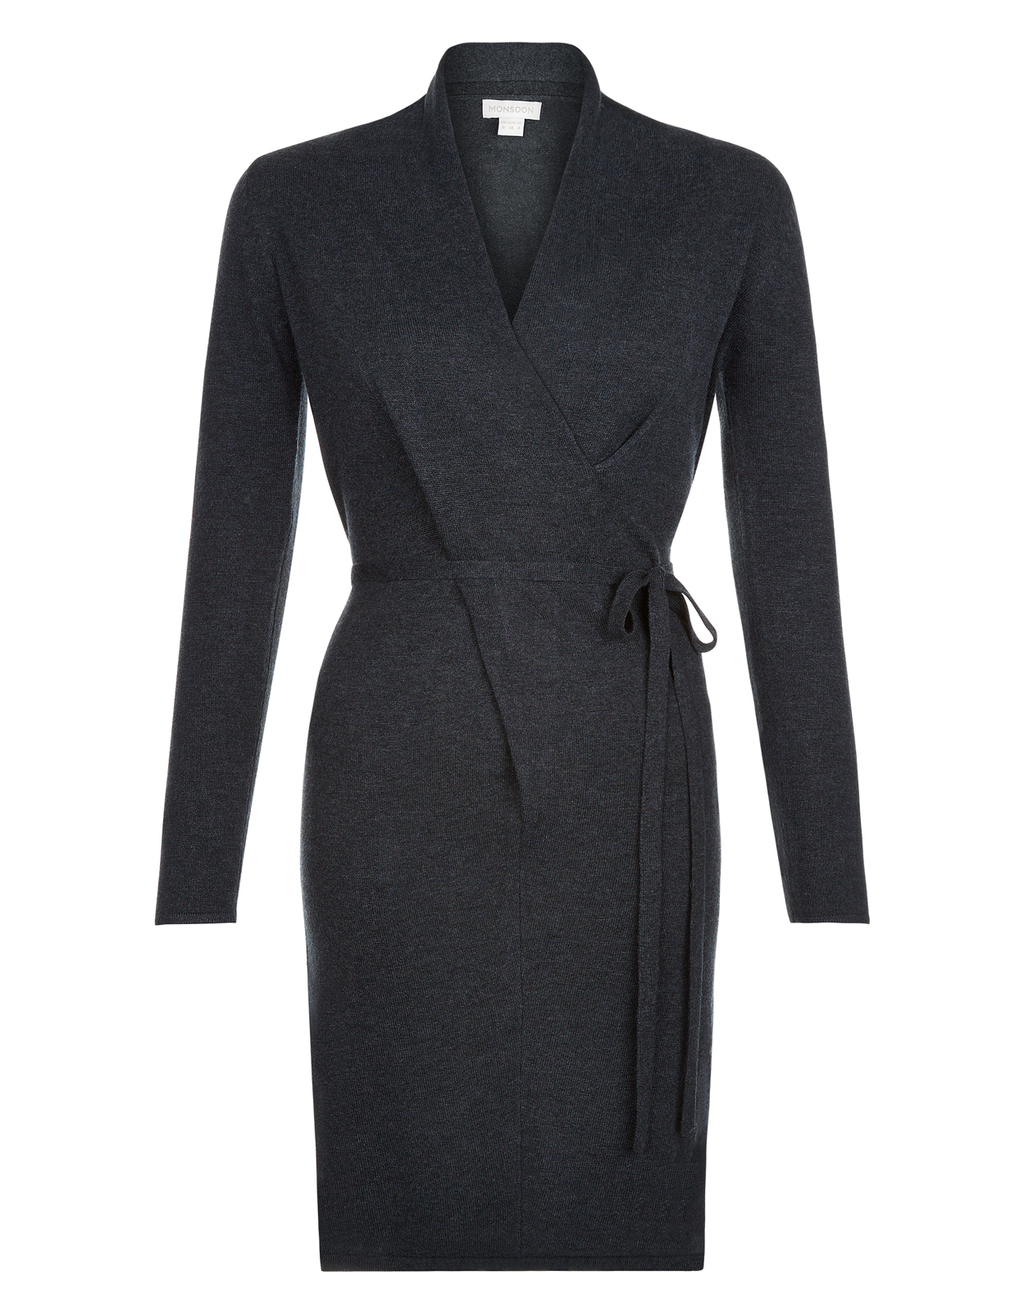 Valerie V Neck Twist Dress - style: faux wrap/wrap; neckline: v-neck; pattern: plain; waist detail: belted waist/tie at waist/drawstring; predominant colour: black; occasions: evening; length: just above the knee; fit: body skimming; fibres: viscose/rayon - stretch; sleeve length: long sleeve; sleeve style: standard; pattern type: fabric; texture group: jersey - stretchy/drapey; season: s/s 2016; wardrobe: event